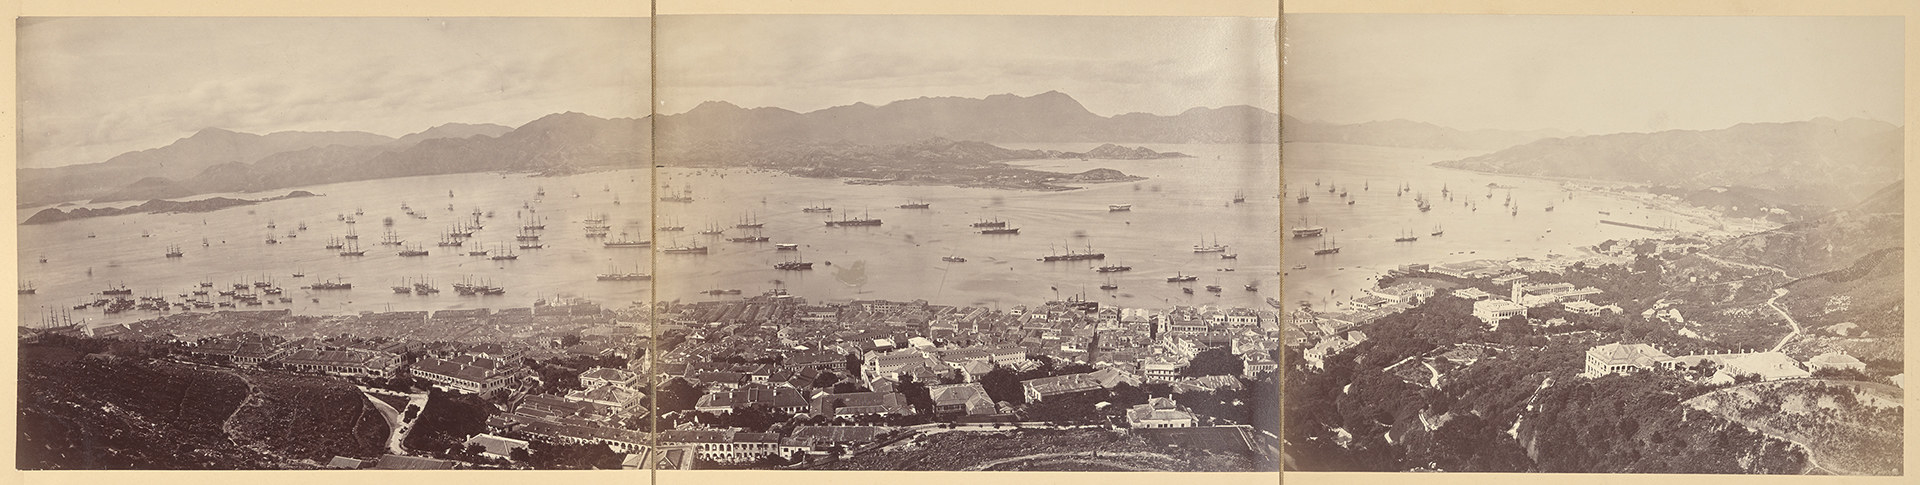 A panoramic view of Hong Kong Harbor, with several boats, ships, and other vessels on an expansive body of water, stitched together between three photos